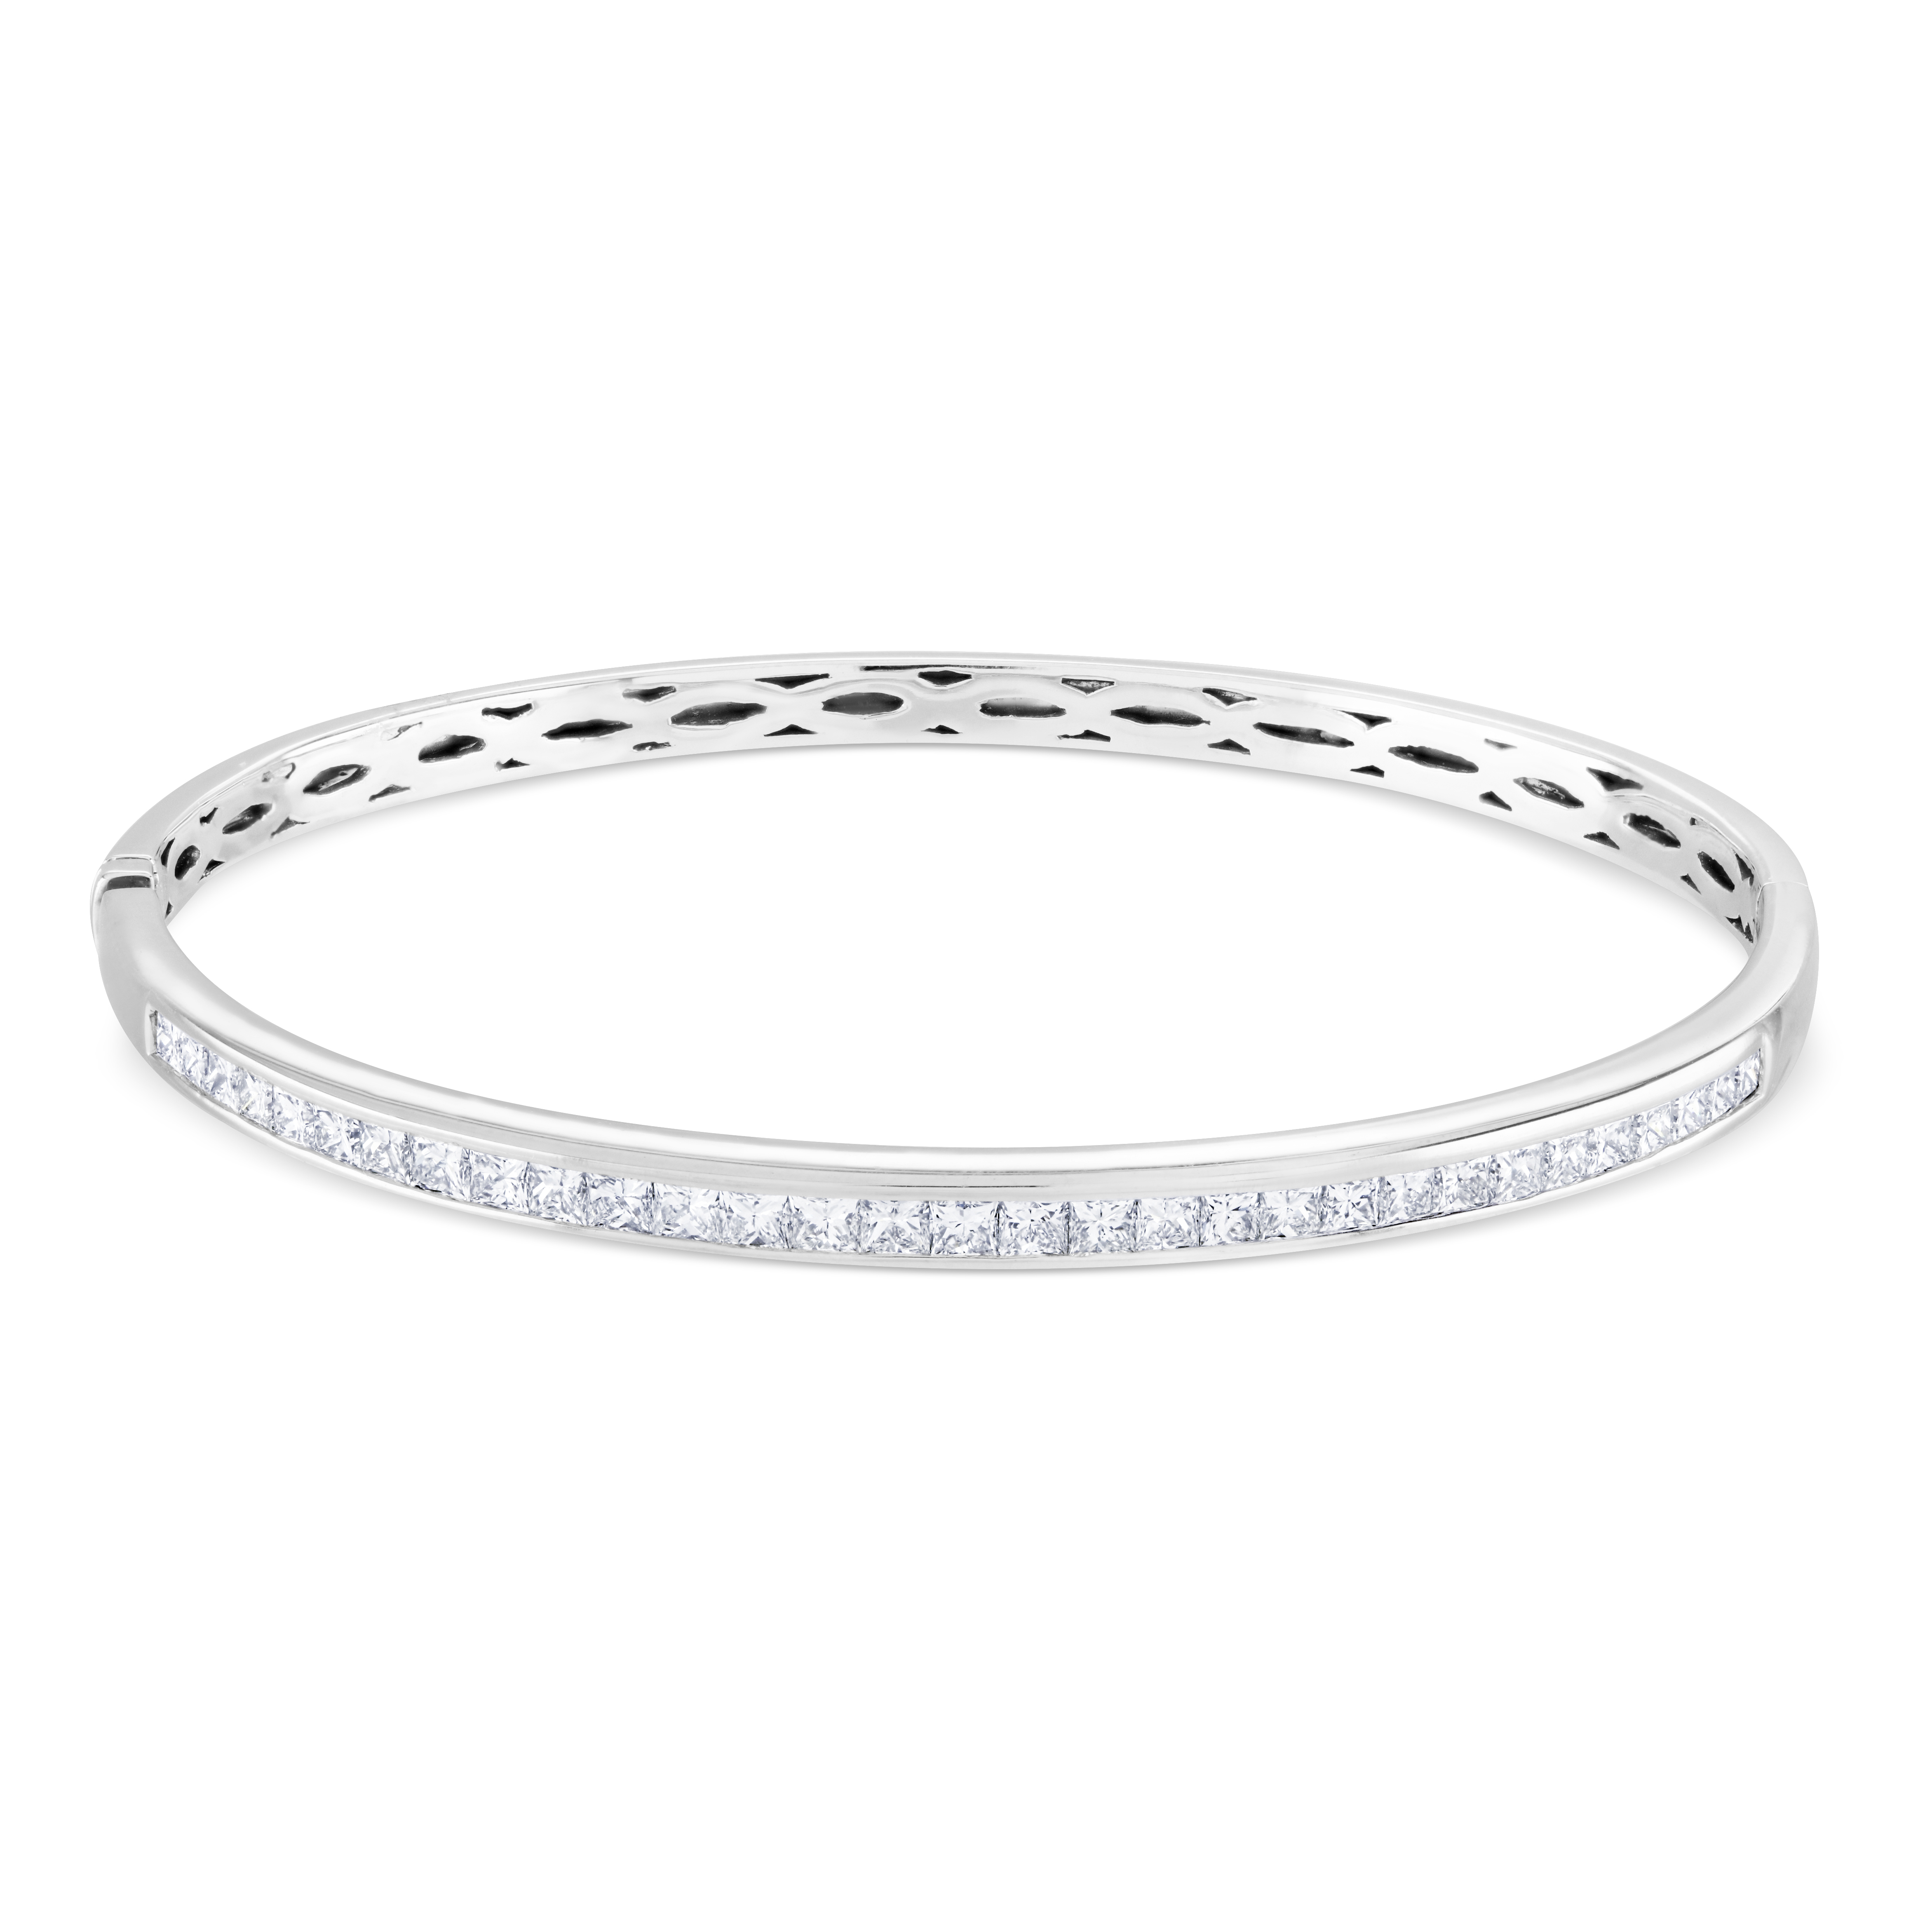 Princess Cut Diamond Bangle